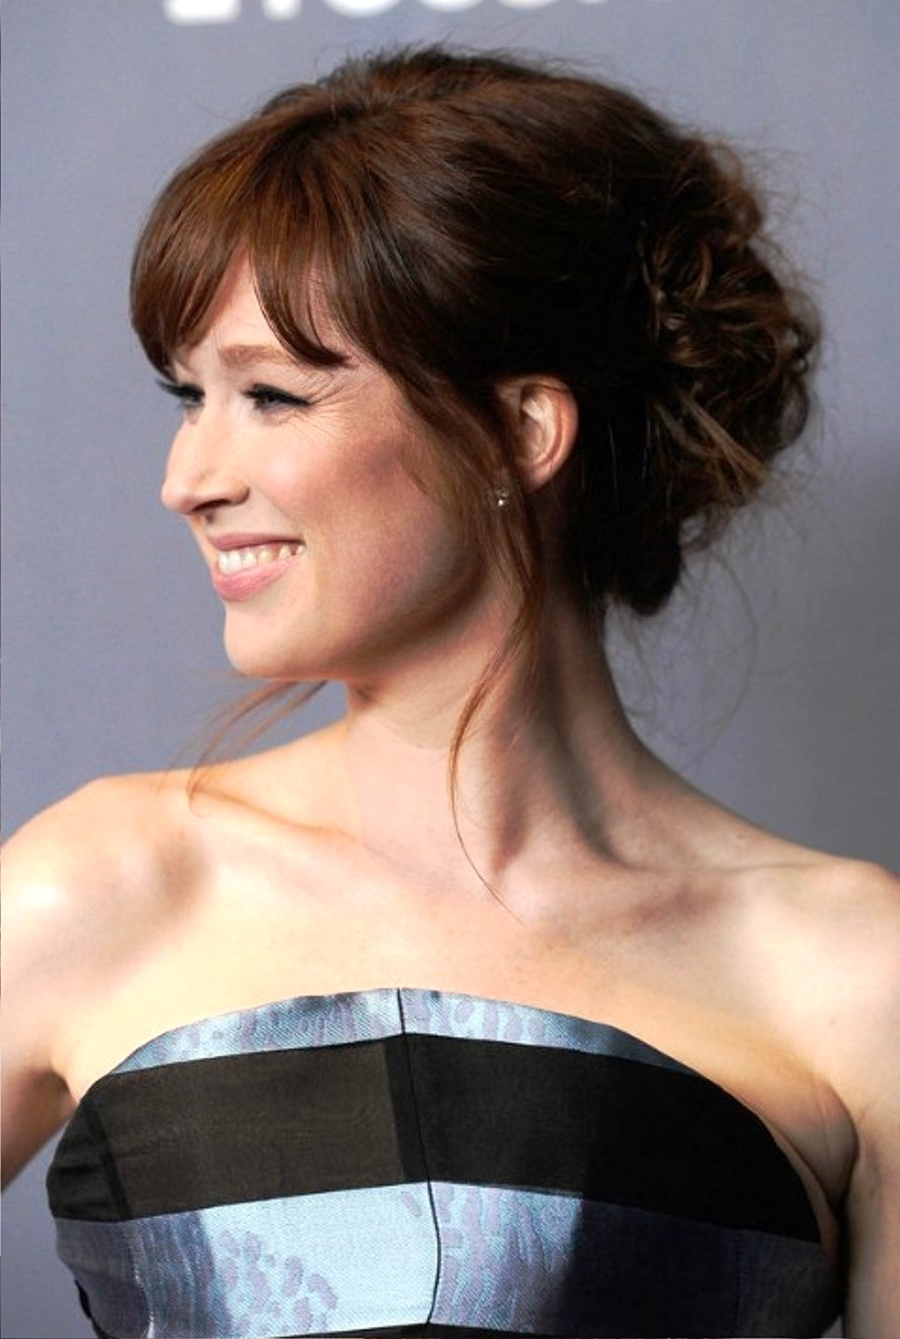 Pictures Of Ellie Kemper Cute Updo Hairstyle With Bangs With Regard To Updo Hairstyles With Bangs (View 14 of 15)